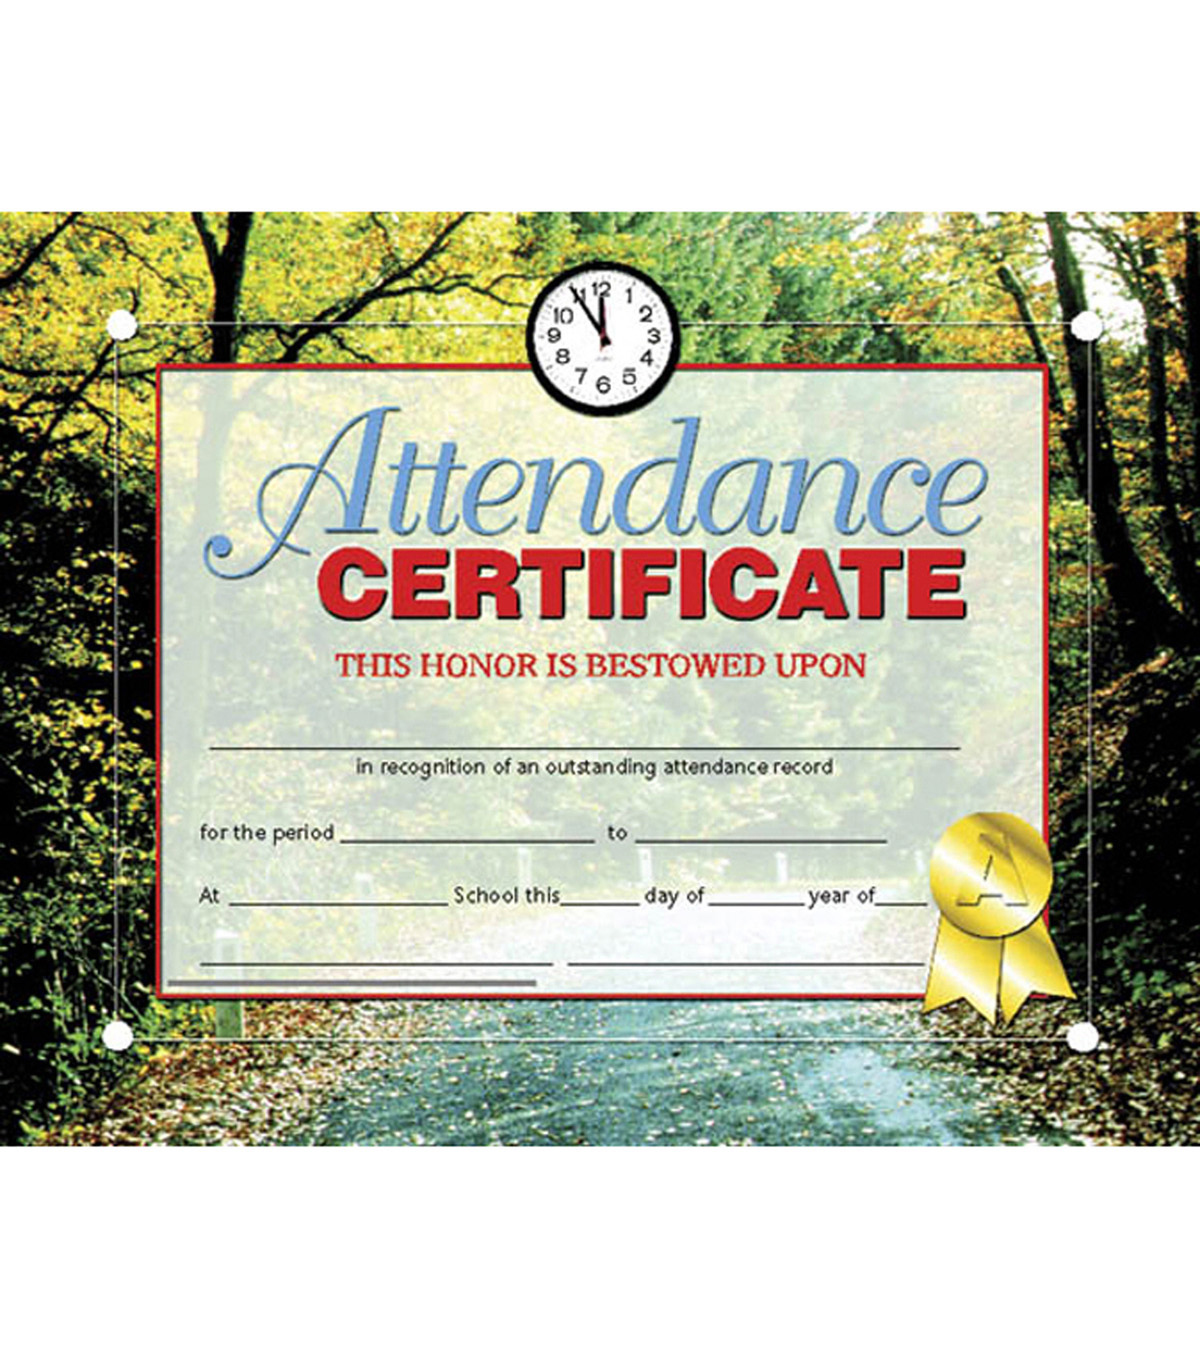 Hayes Attendance Certificate, 30 Per Pack, 6 Packs